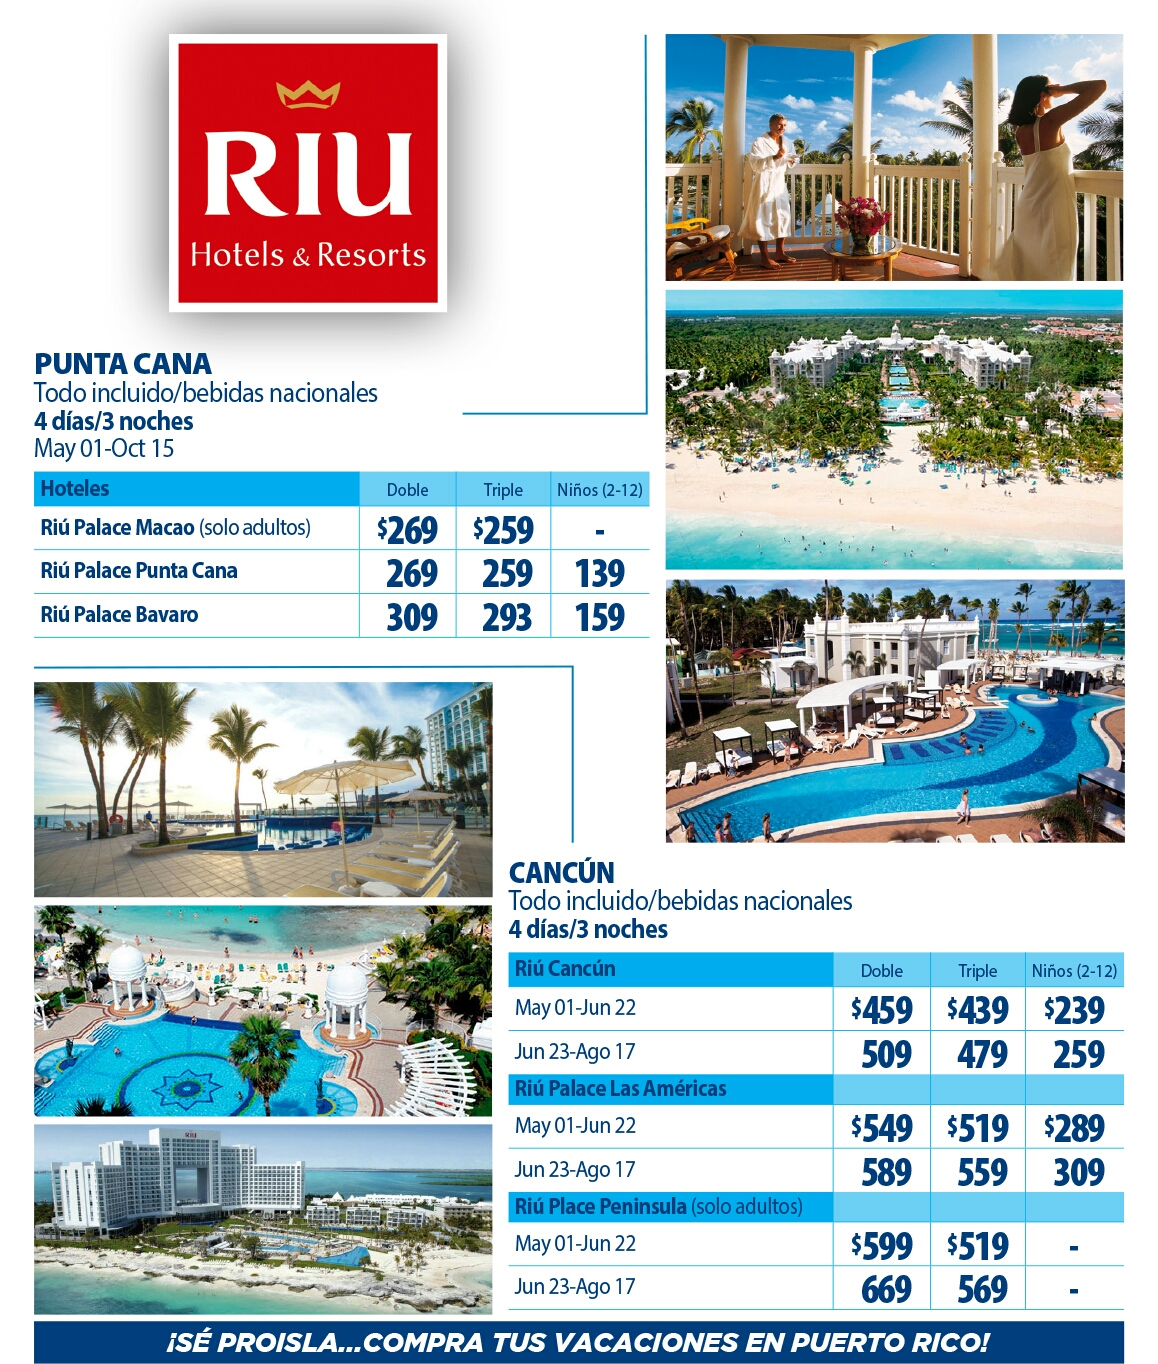 Riu-Hotels-&-Resorts-2015-1